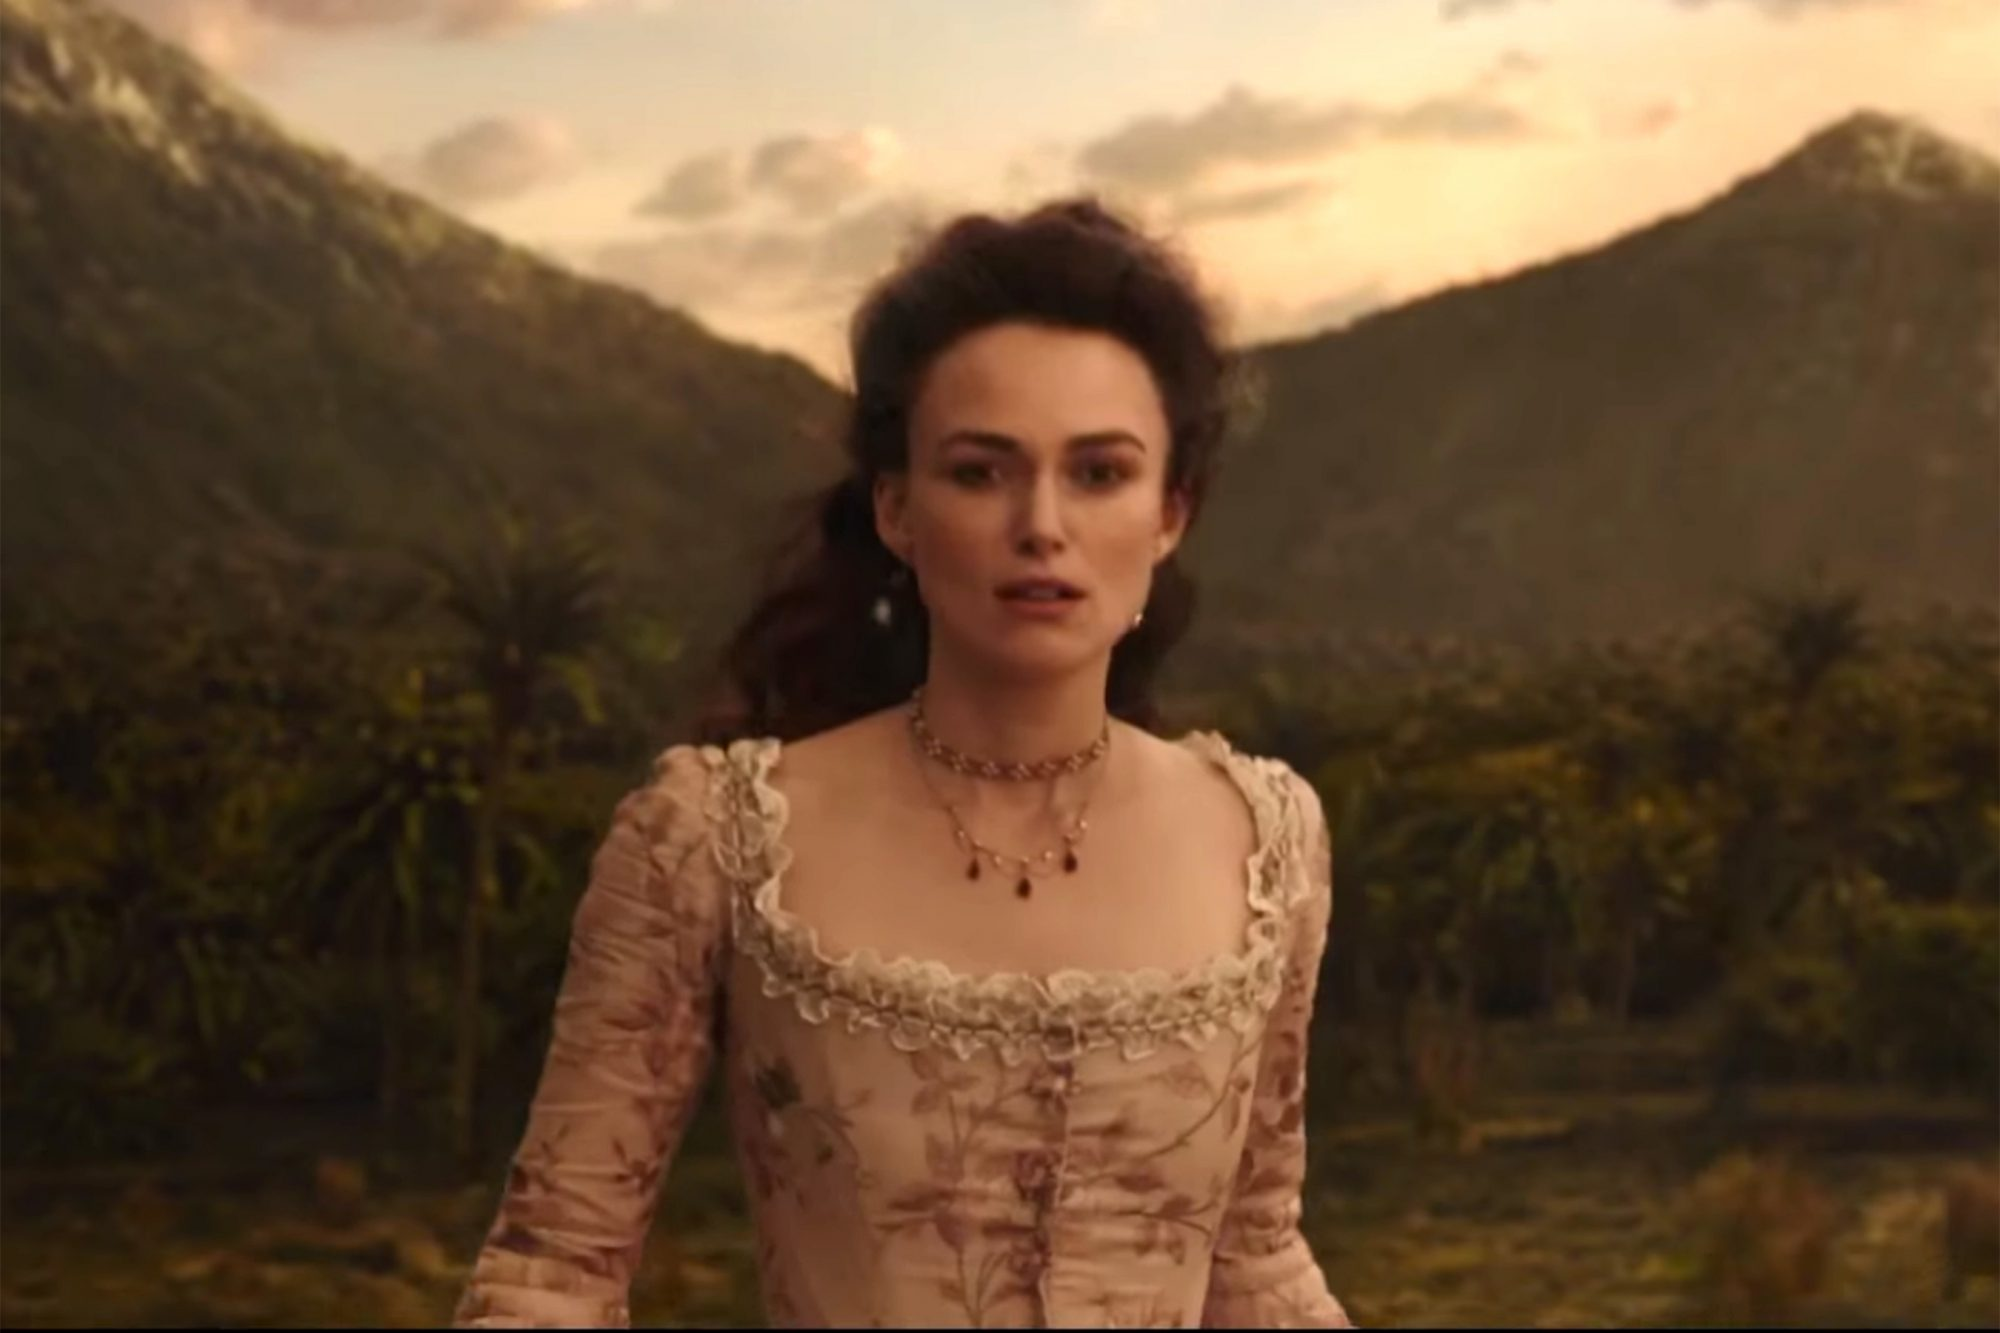 Keira Knightley returns in 'Pirates 5' international trailer